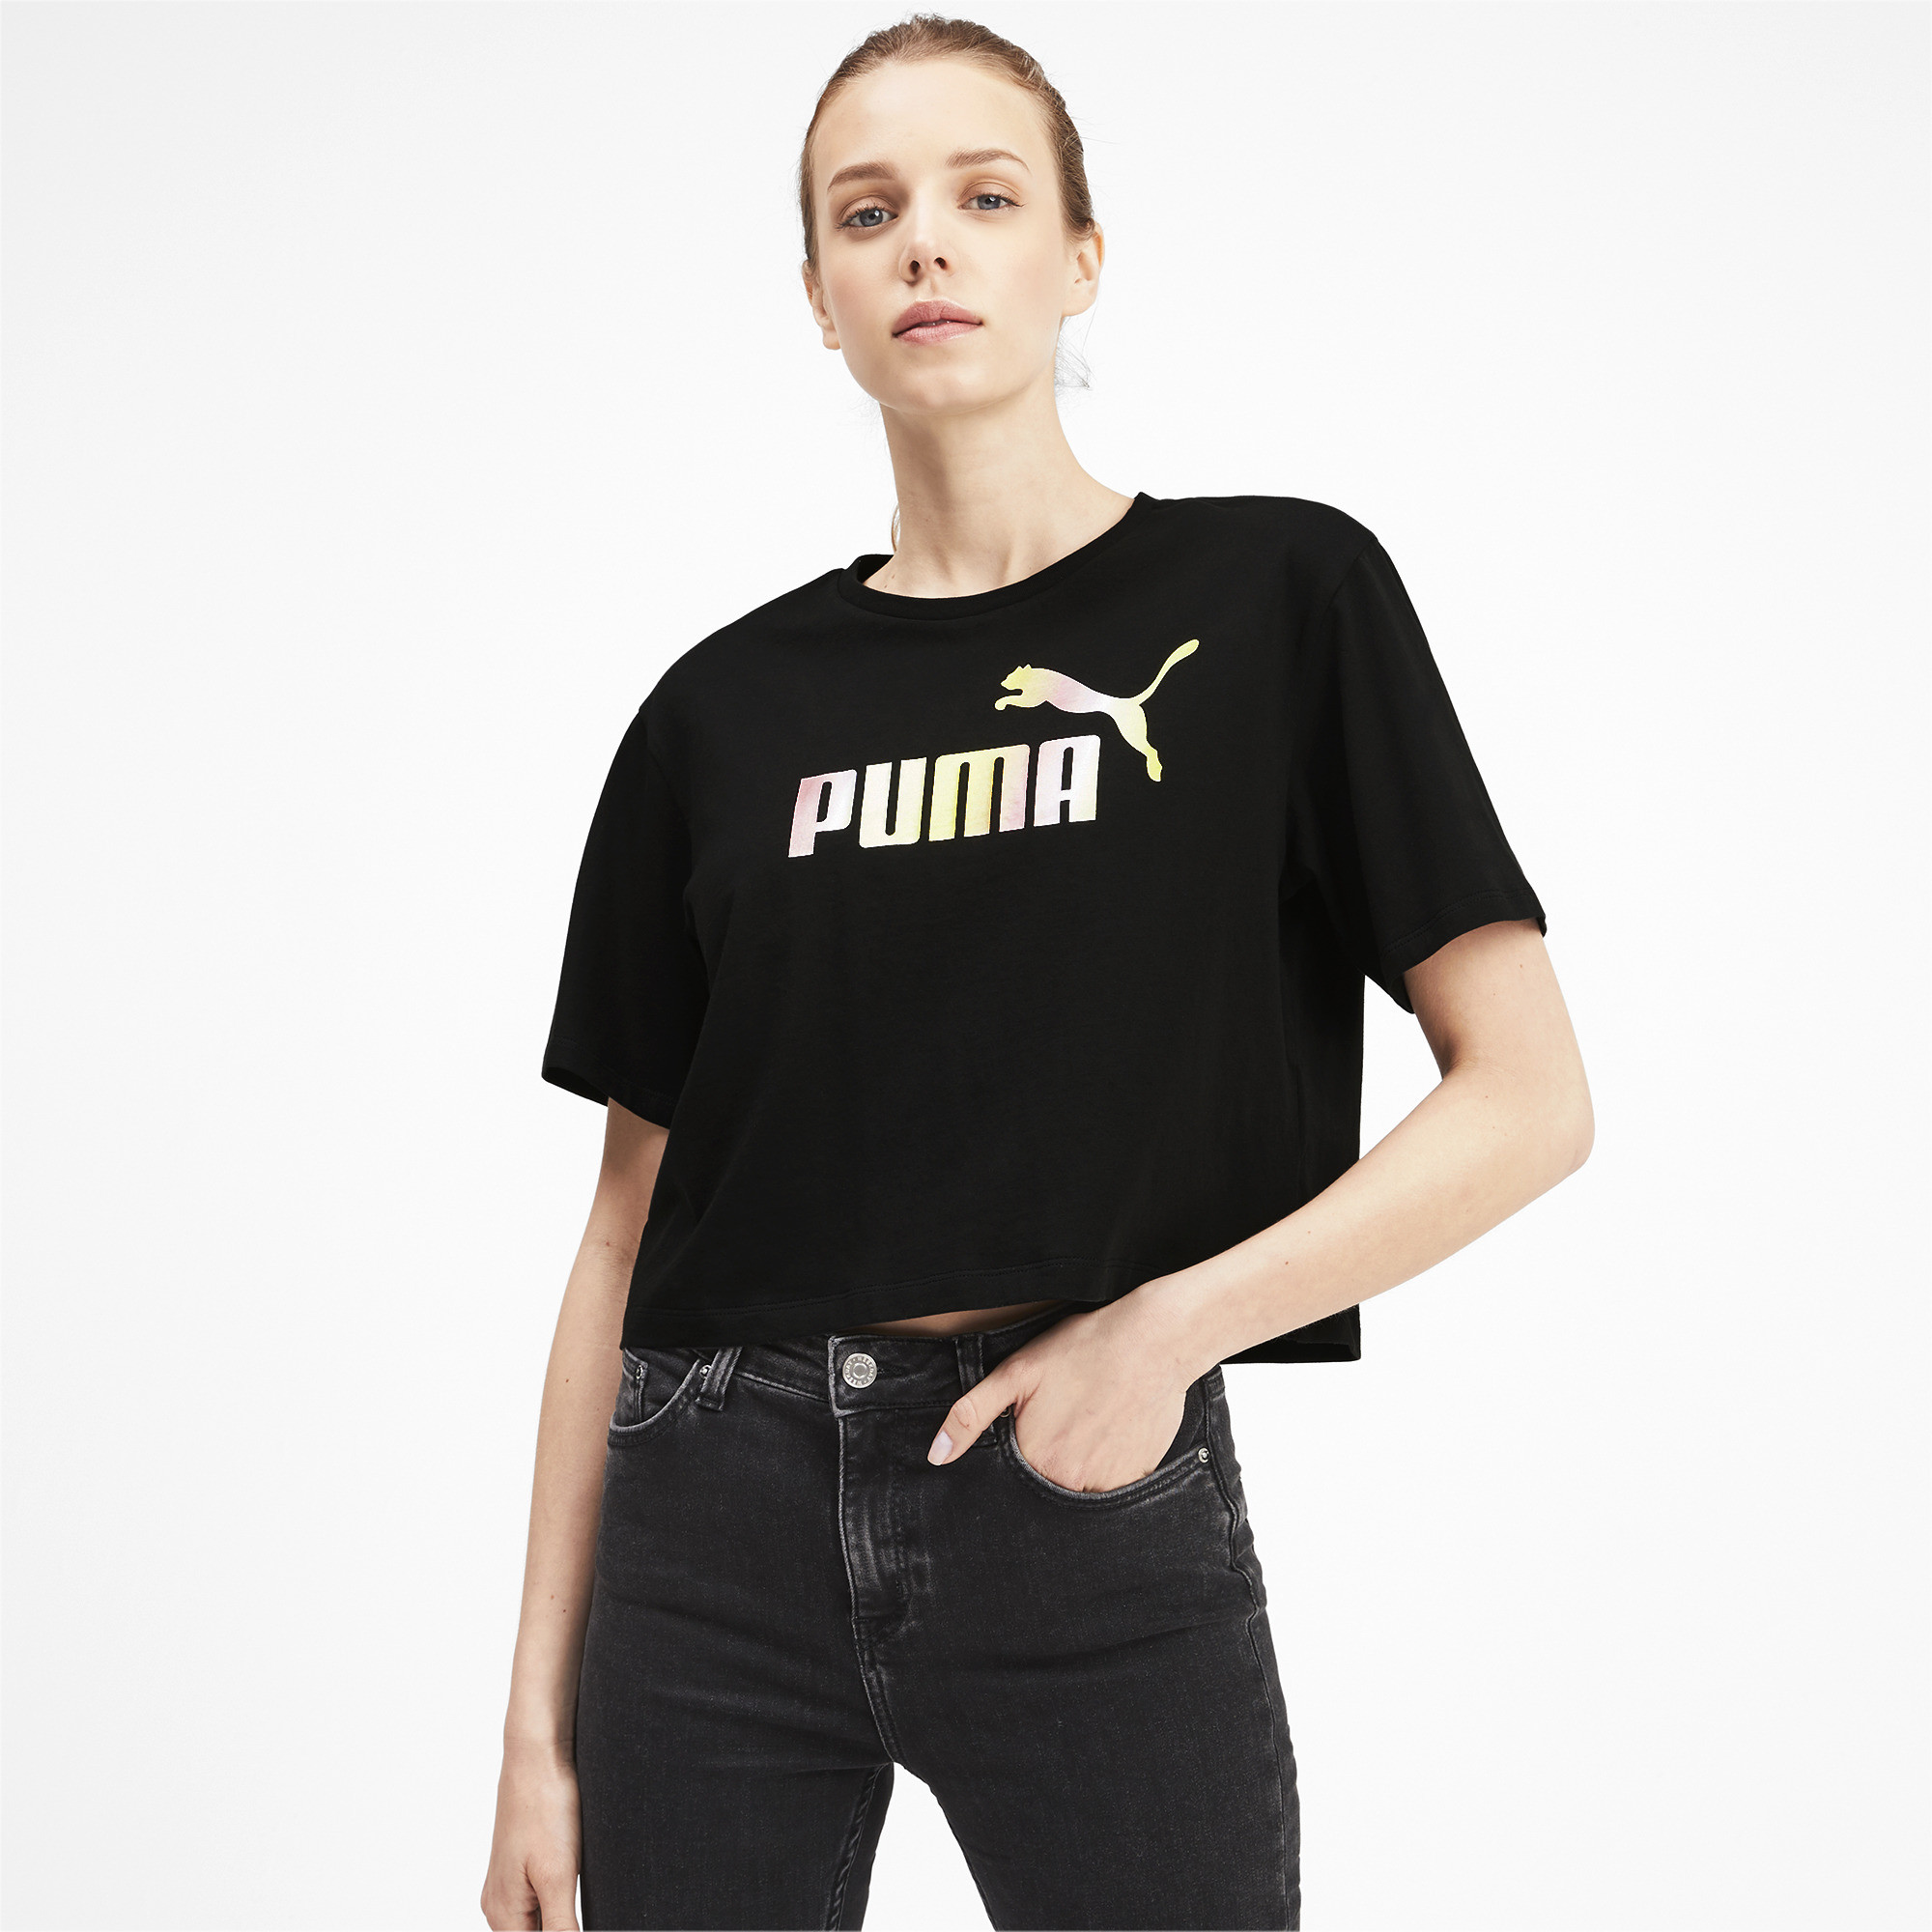 PUMA-Women-039-s-Cropped-Logo-Tee-Women-Crop-Top-Basics thumbnail 16